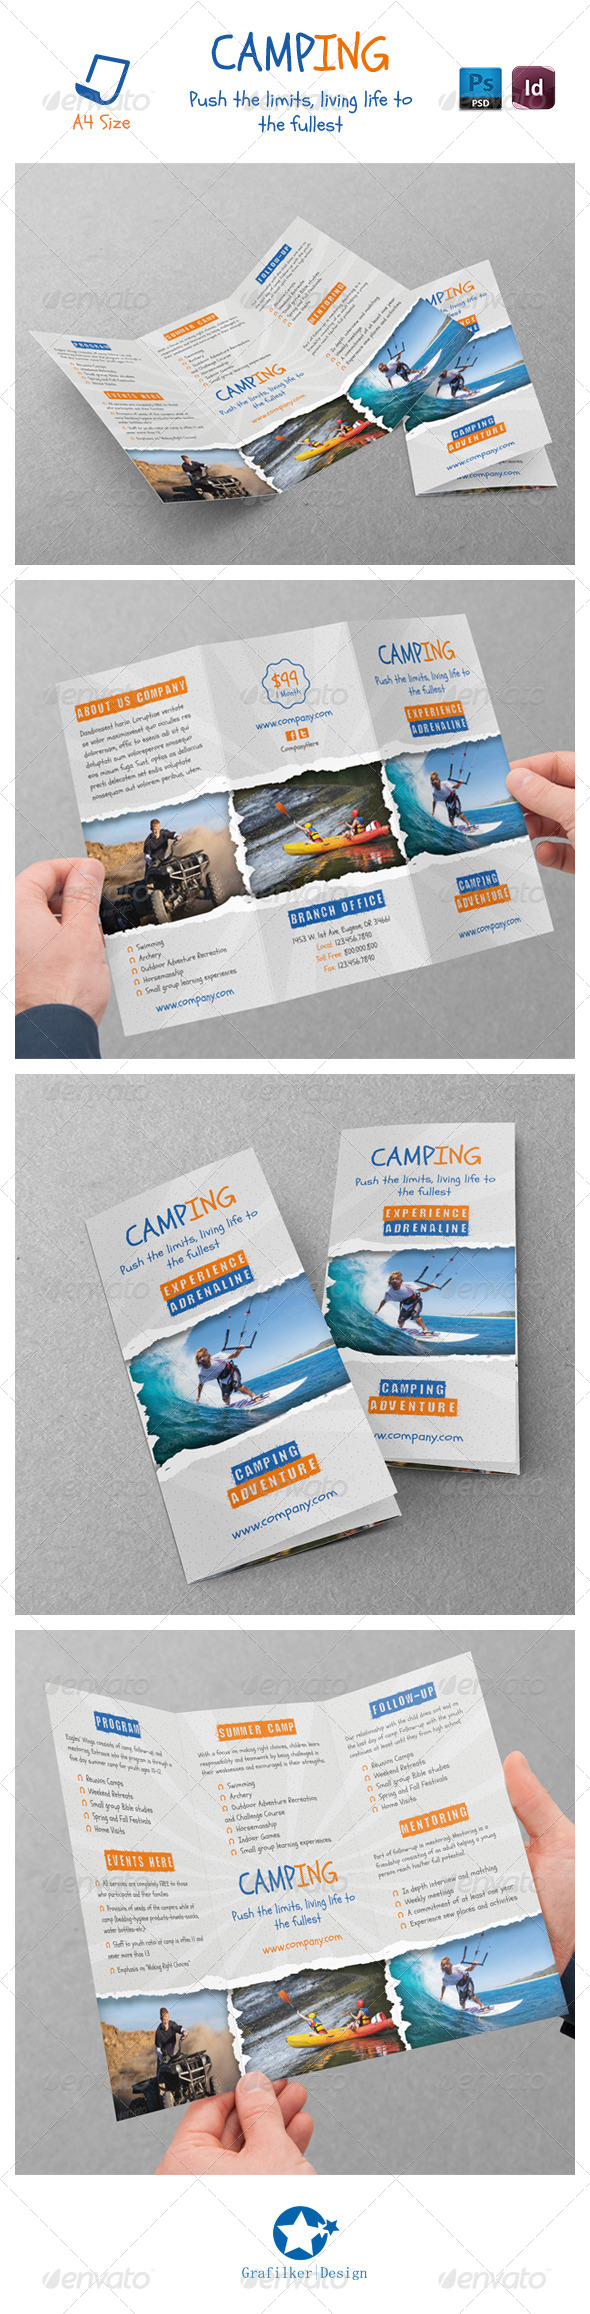 GraphicRiver Camping Adventure Tri-Fold Templates 7049850